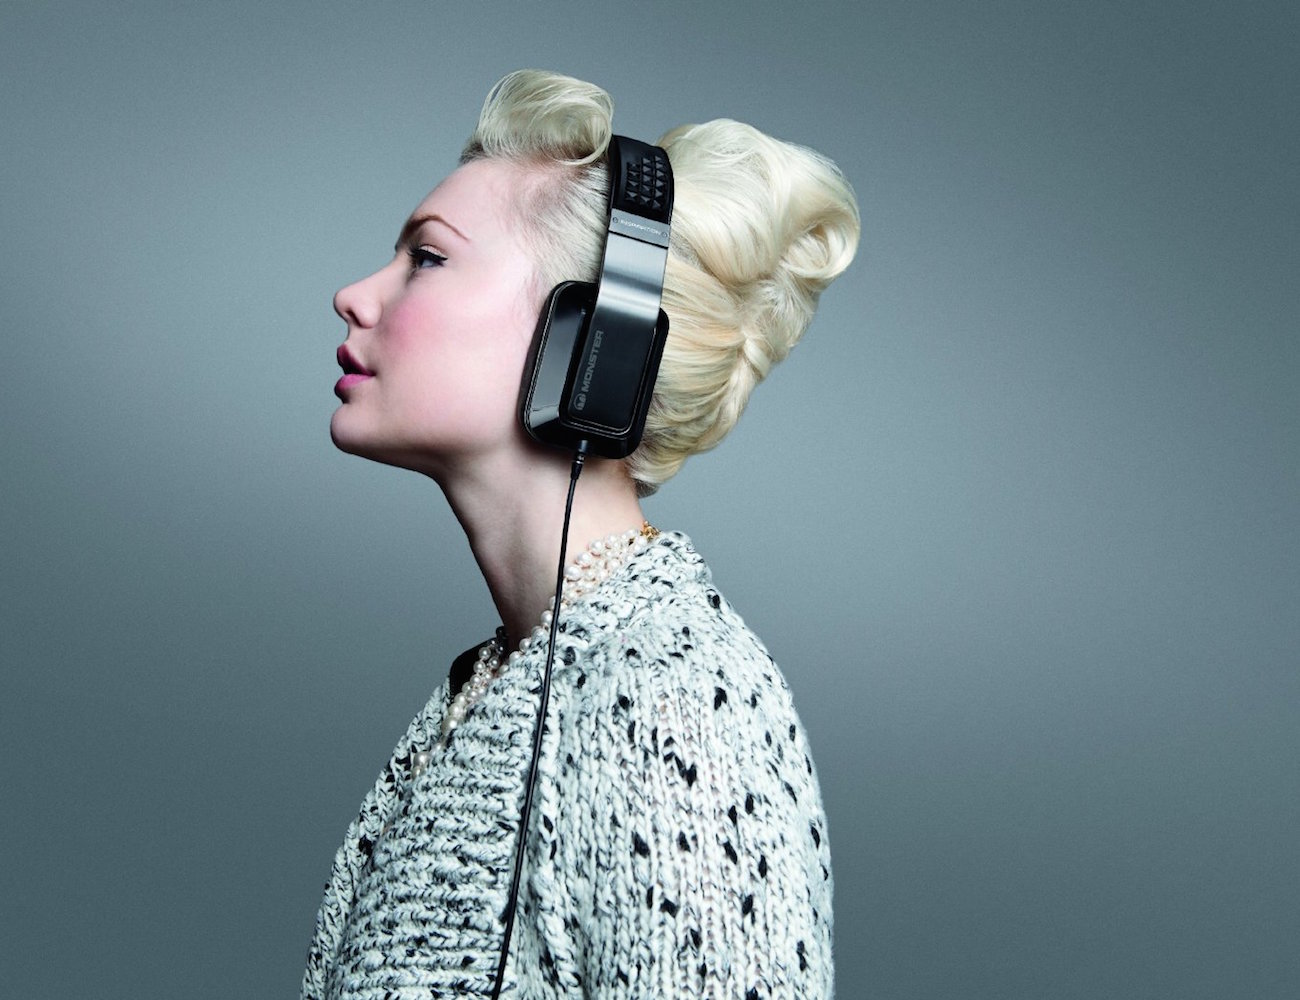 monster-inspiration-active-noise-canceling-over-ear-headphones-02